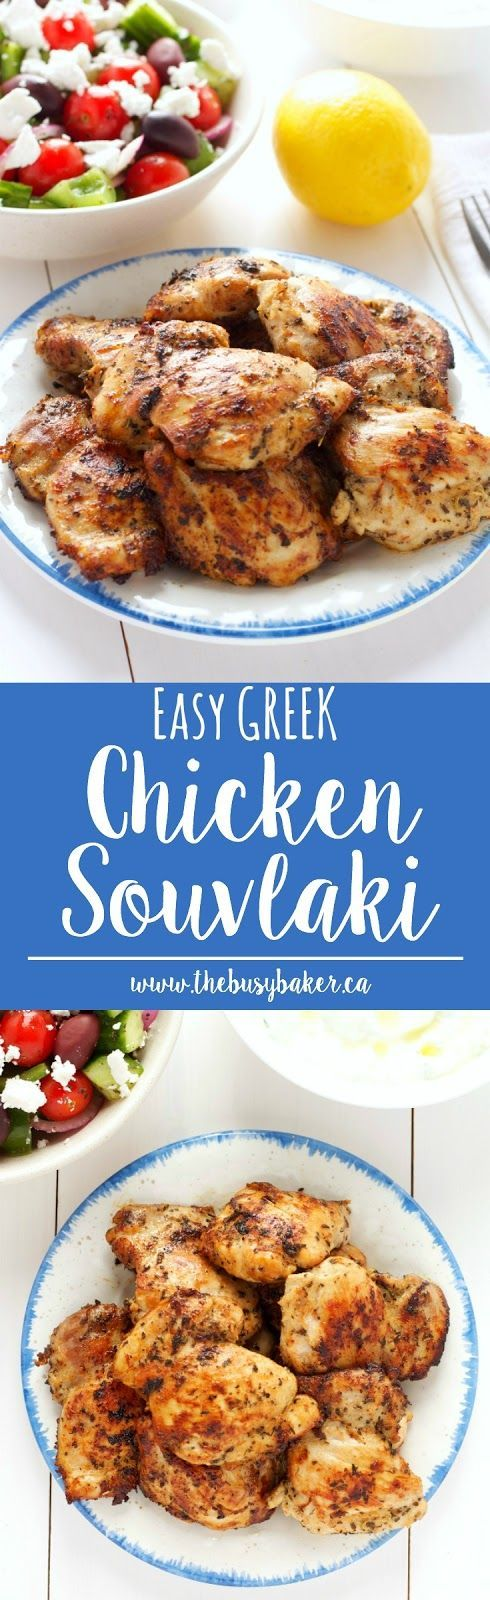 Easy Greek Chicken Souvlaki http://www.thebusybaker.ca